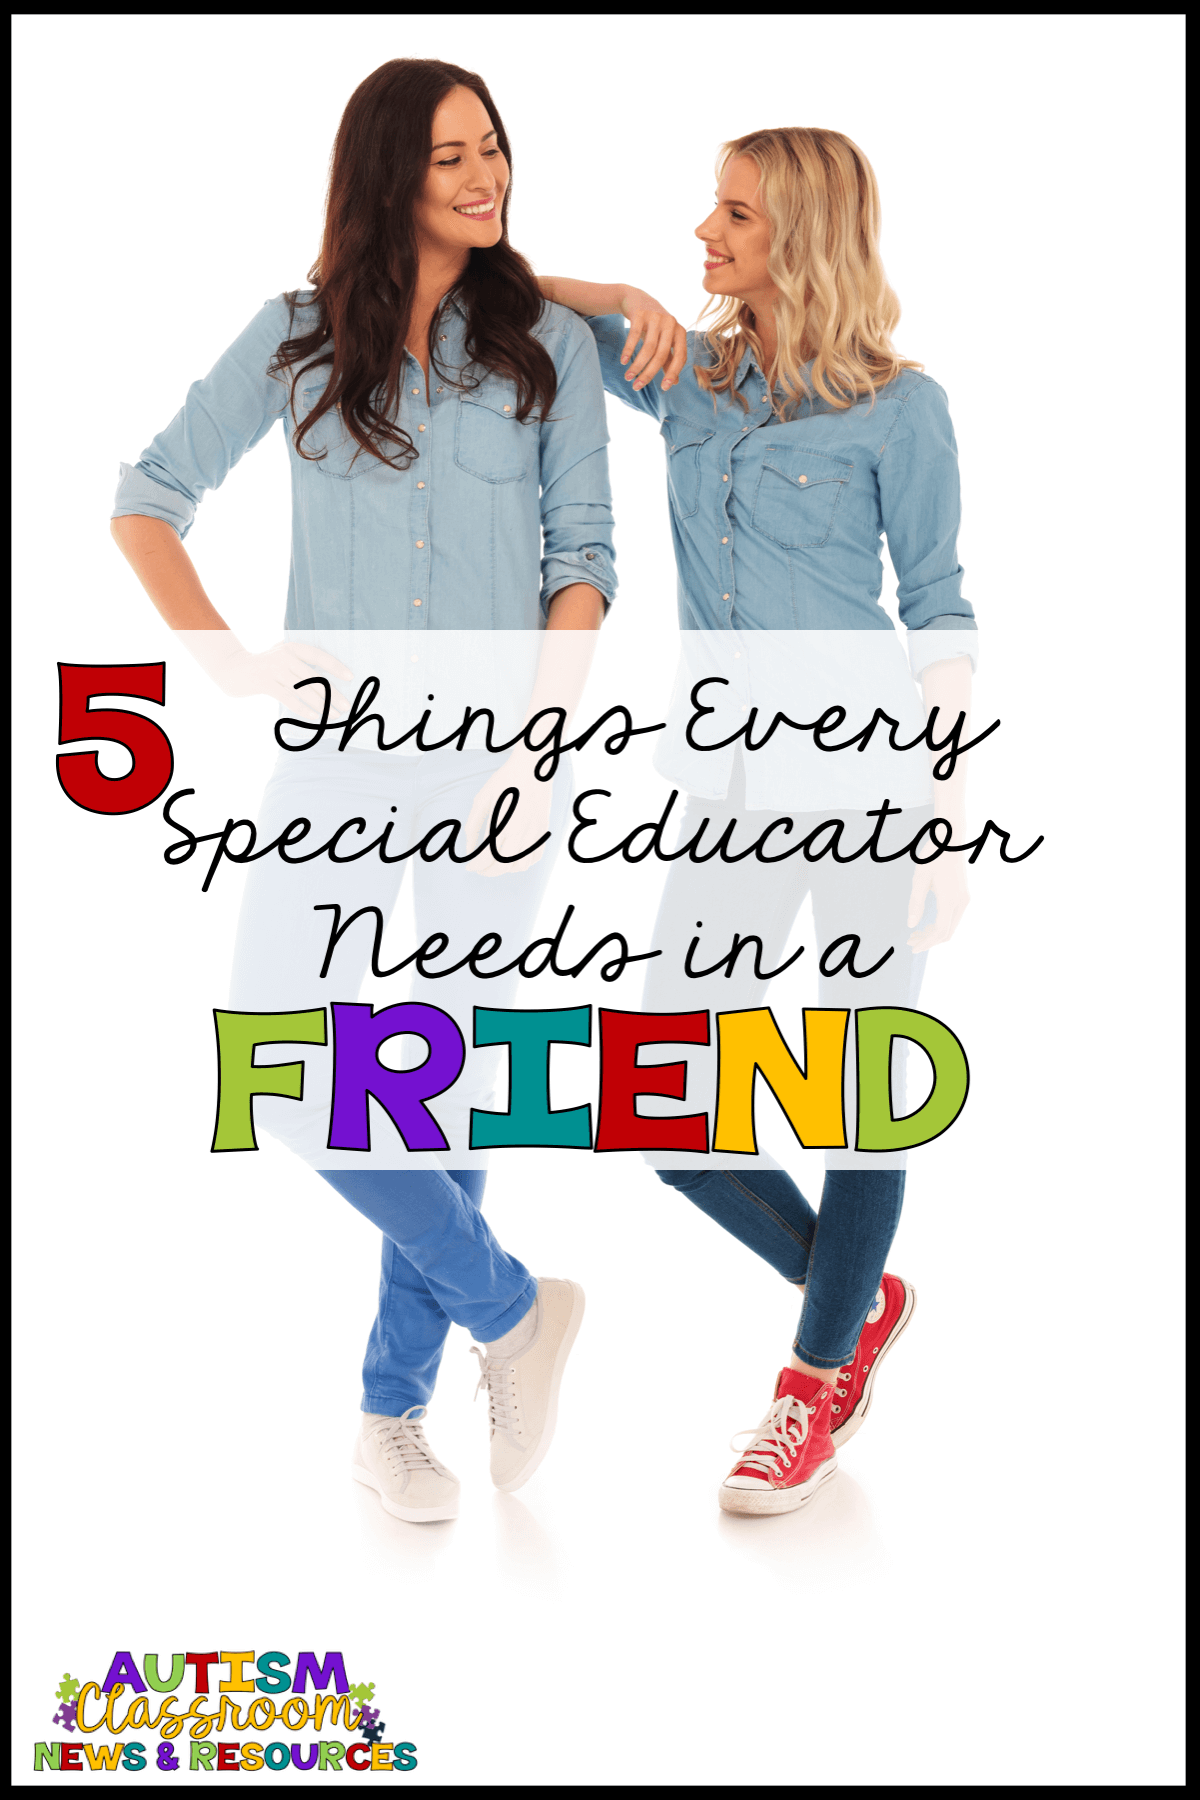 Every special education teacher needs a friend whose got their back!  Check out these 5 things a true friend will do!